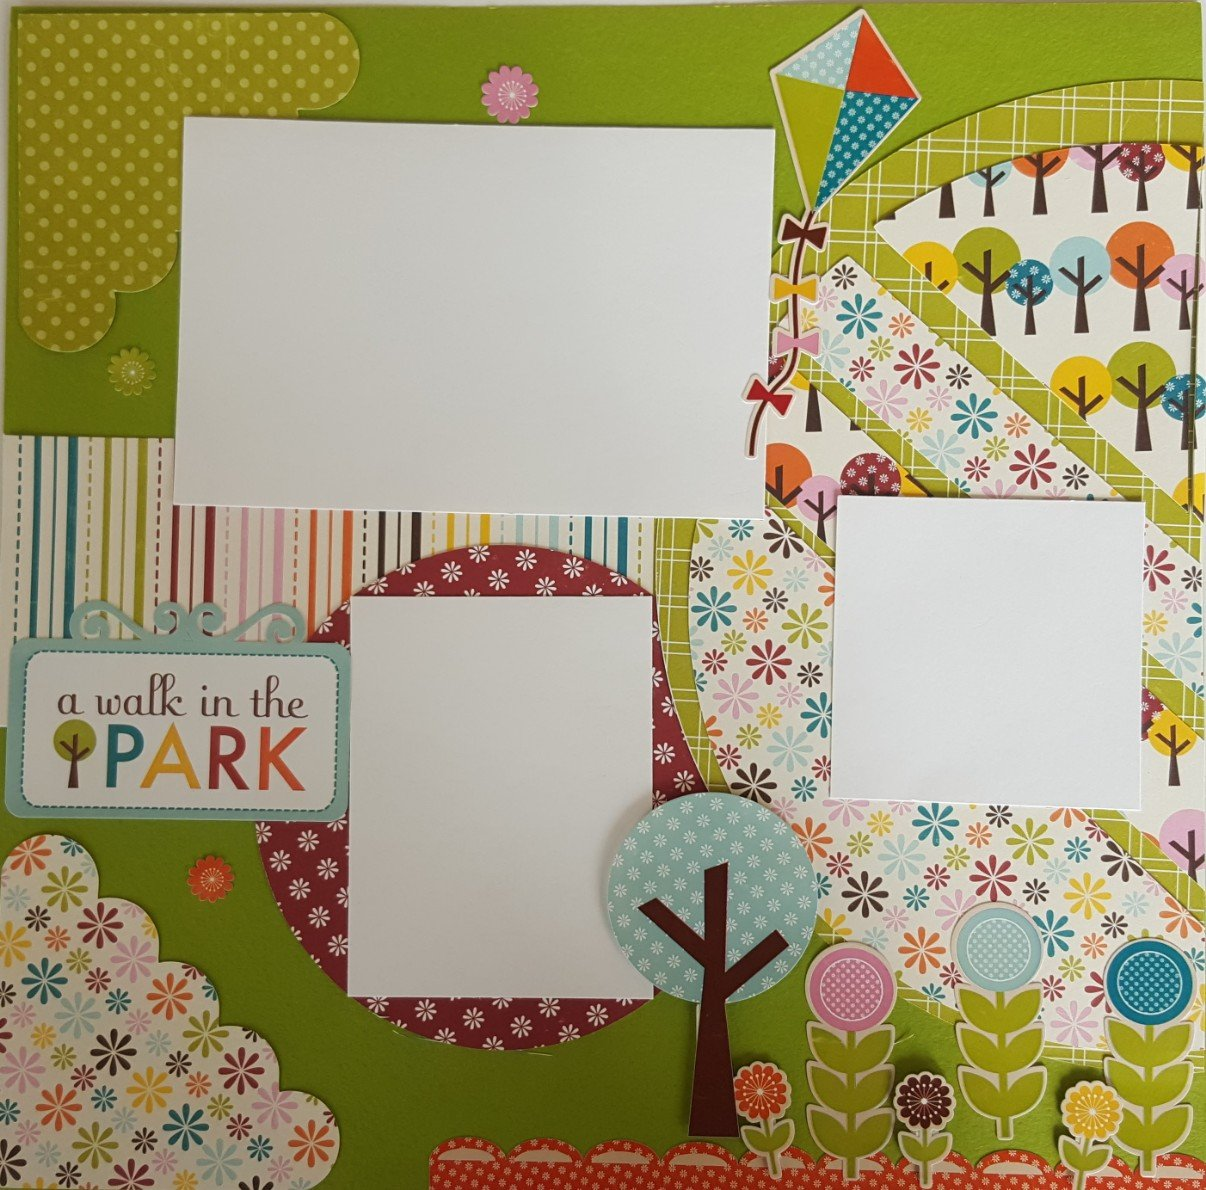 Walk in the park 2x2 page layout kit